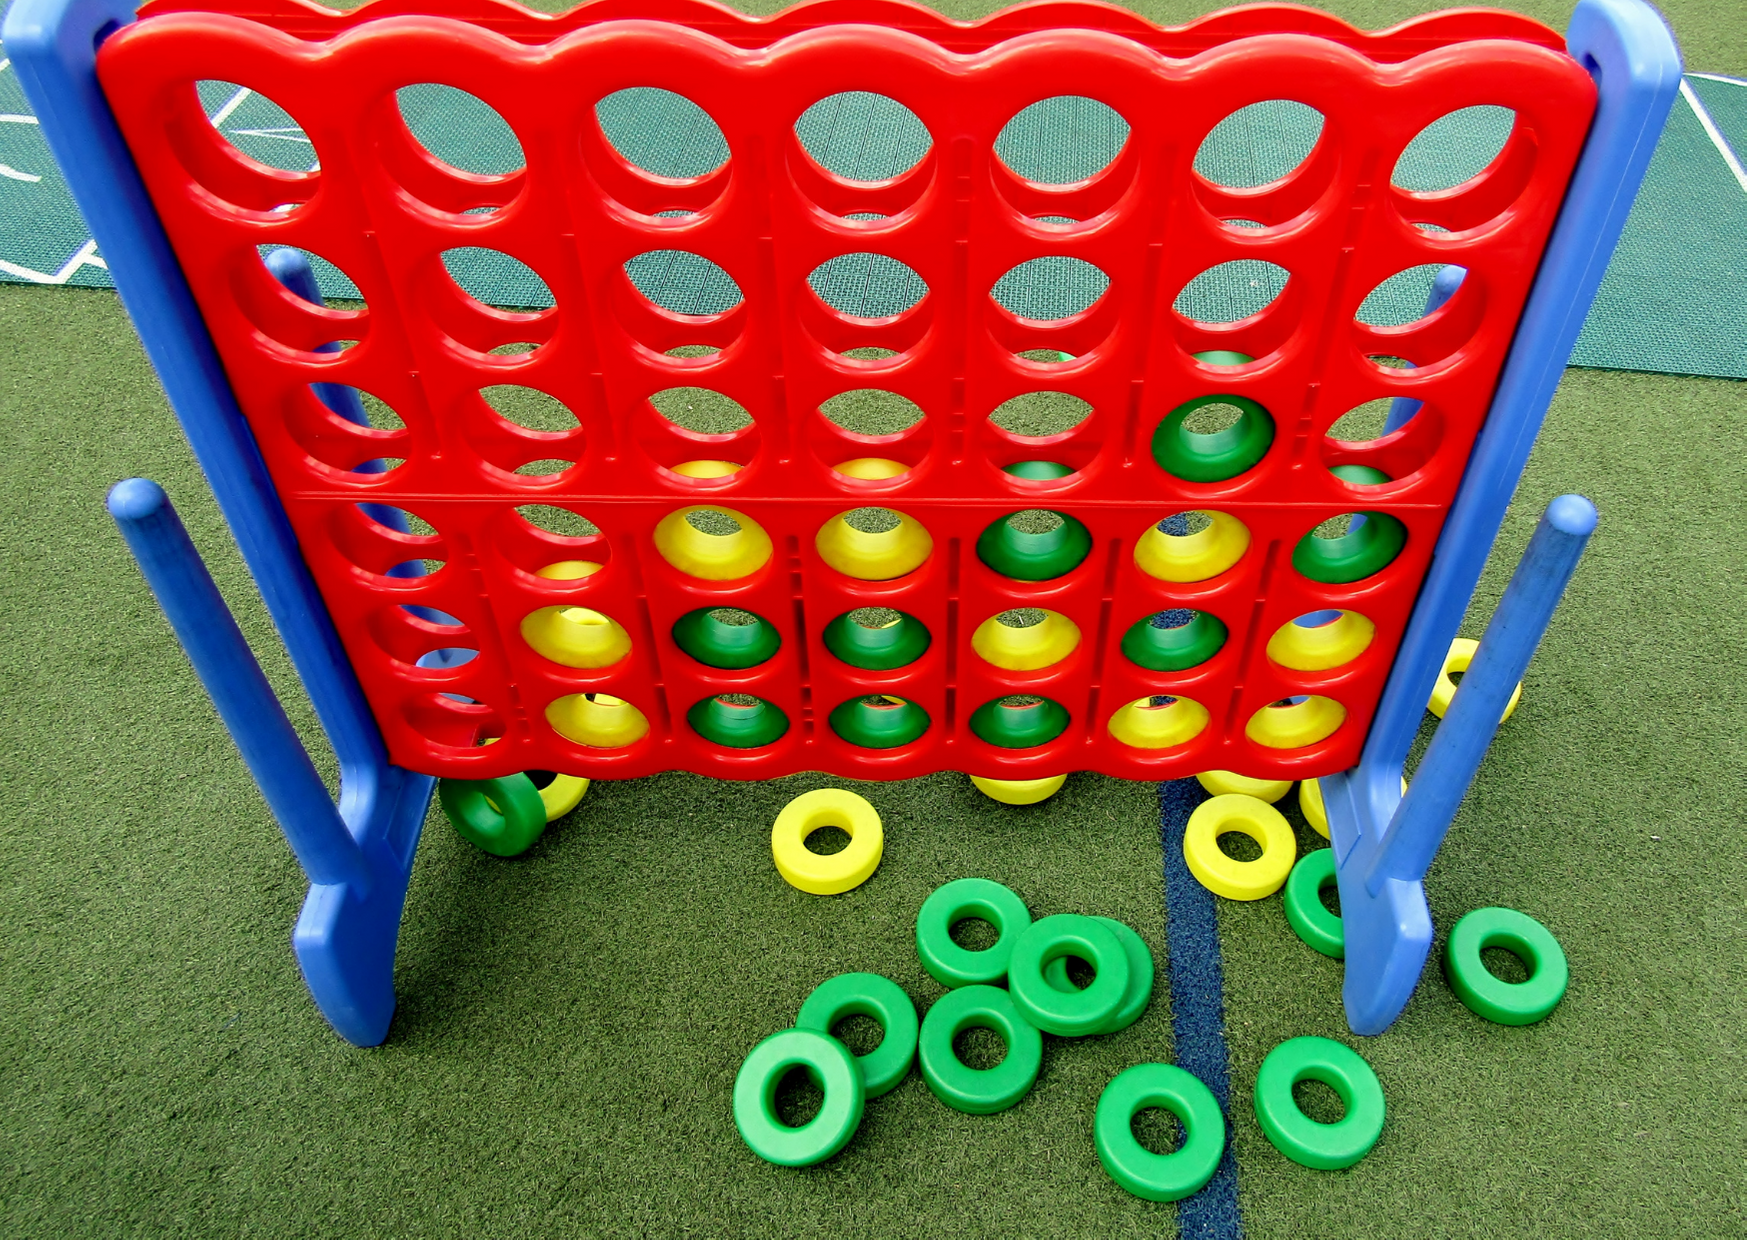 a giant lawn connect of The Three Best Giant Connect Four Lawn Games to Encourage Backyard Fun